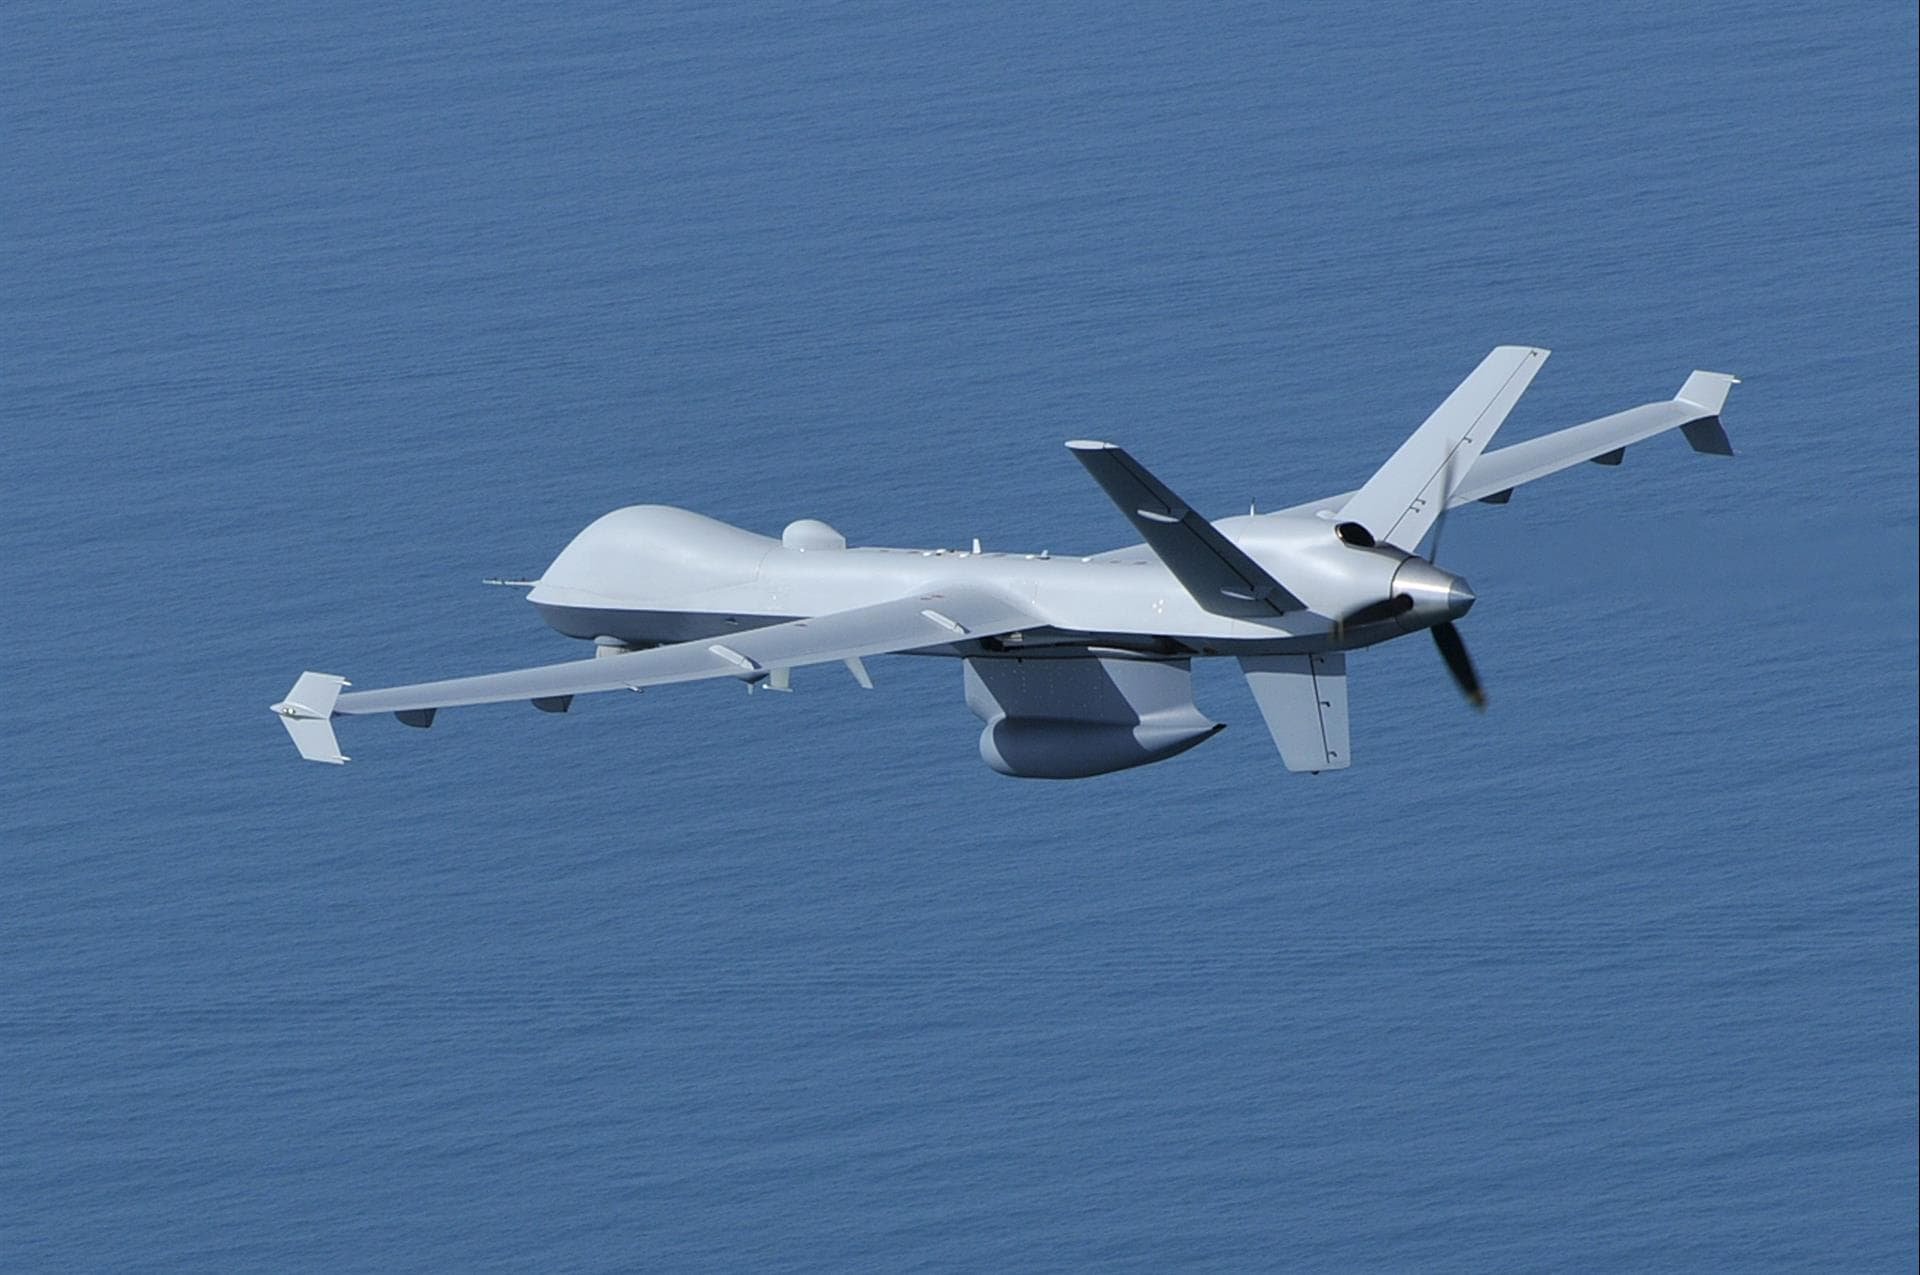 India To Purchase 22 Predator Guardian Drones All You Need Know About These UAVs